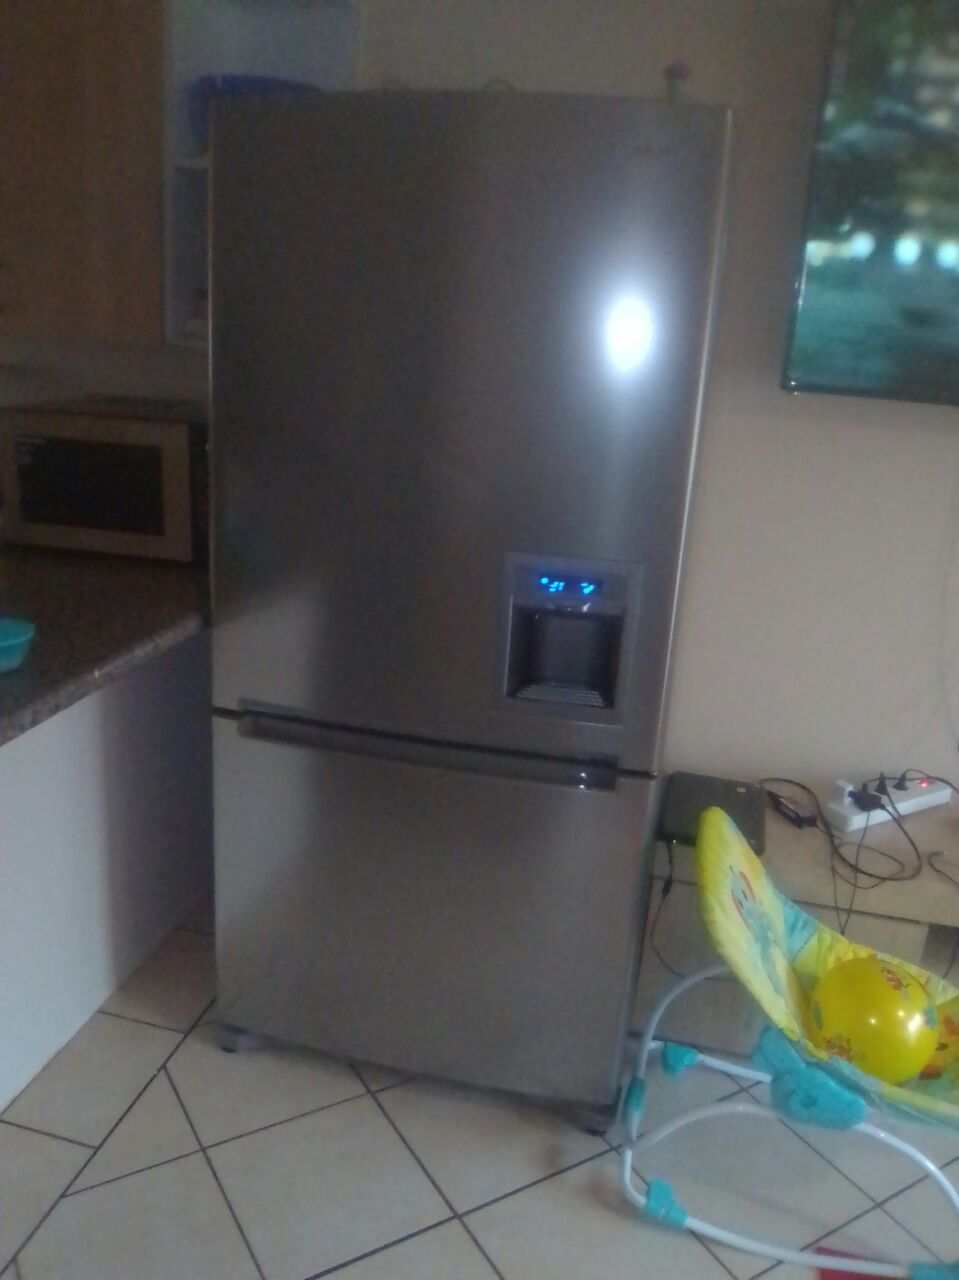 Two Fridges (Big Samsung and Small Hisense) all for just R14000 (Reduced). (Big Samsung is worth R29000).